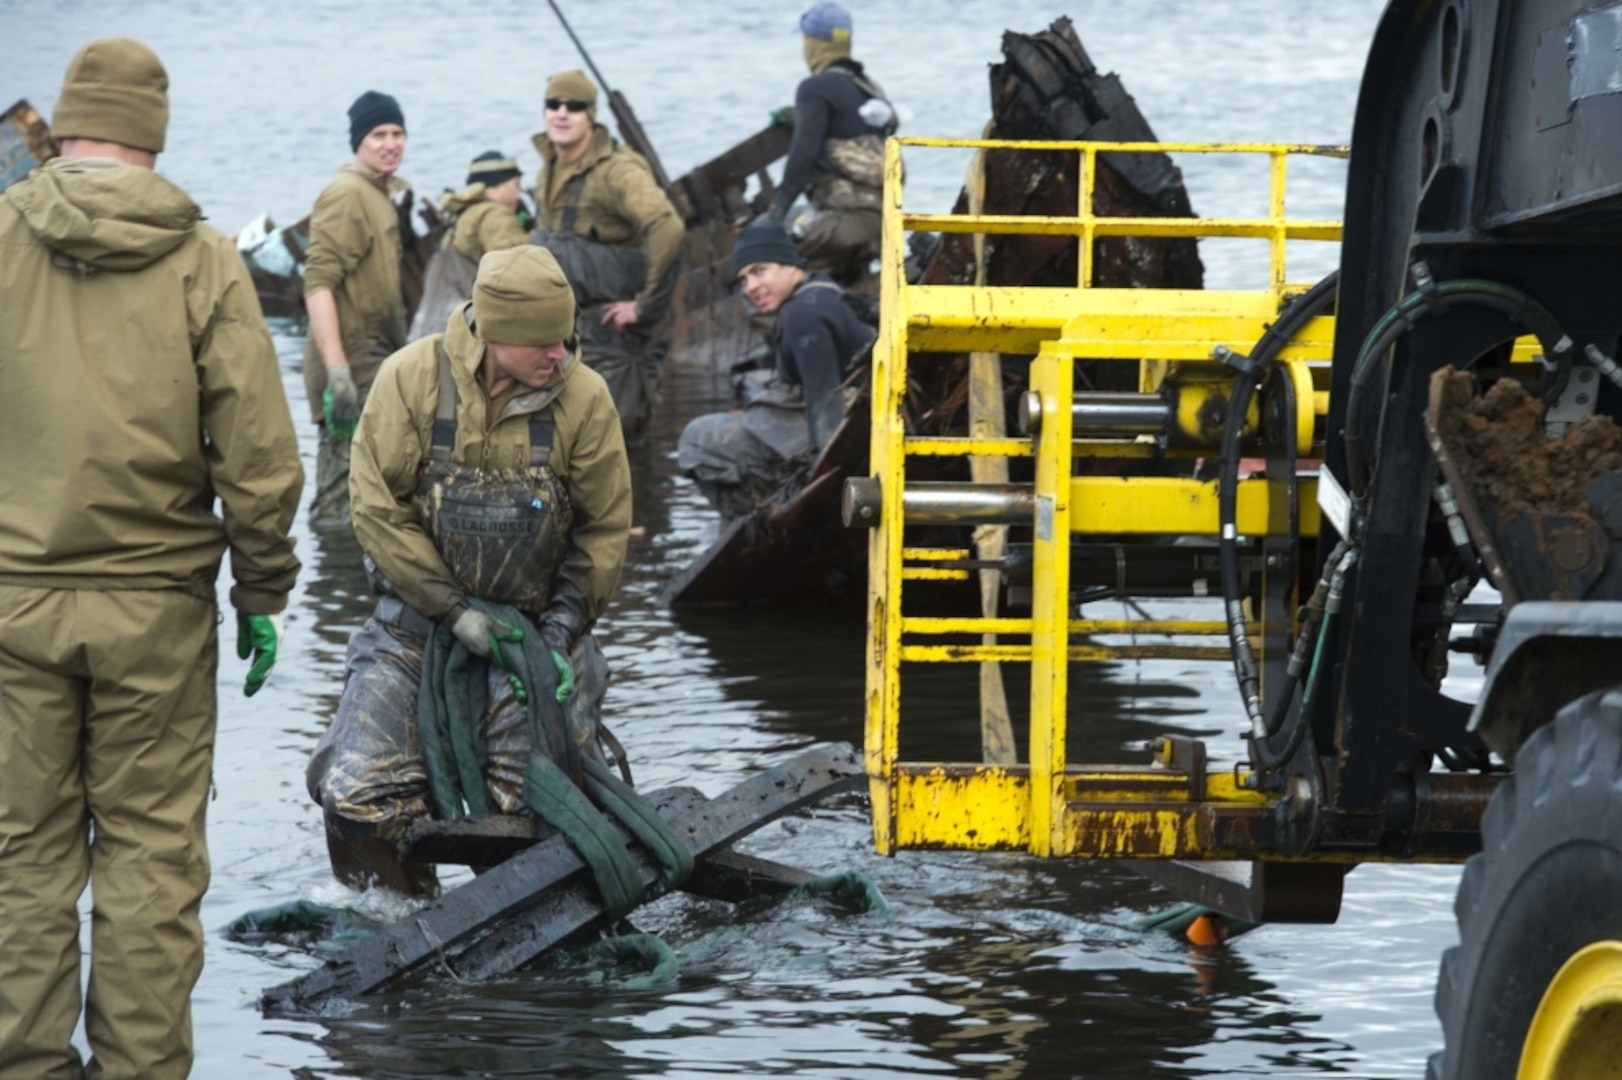 Navy Divers Clear Fishing Vessel from Alaska Harbor in Arctic Exercise